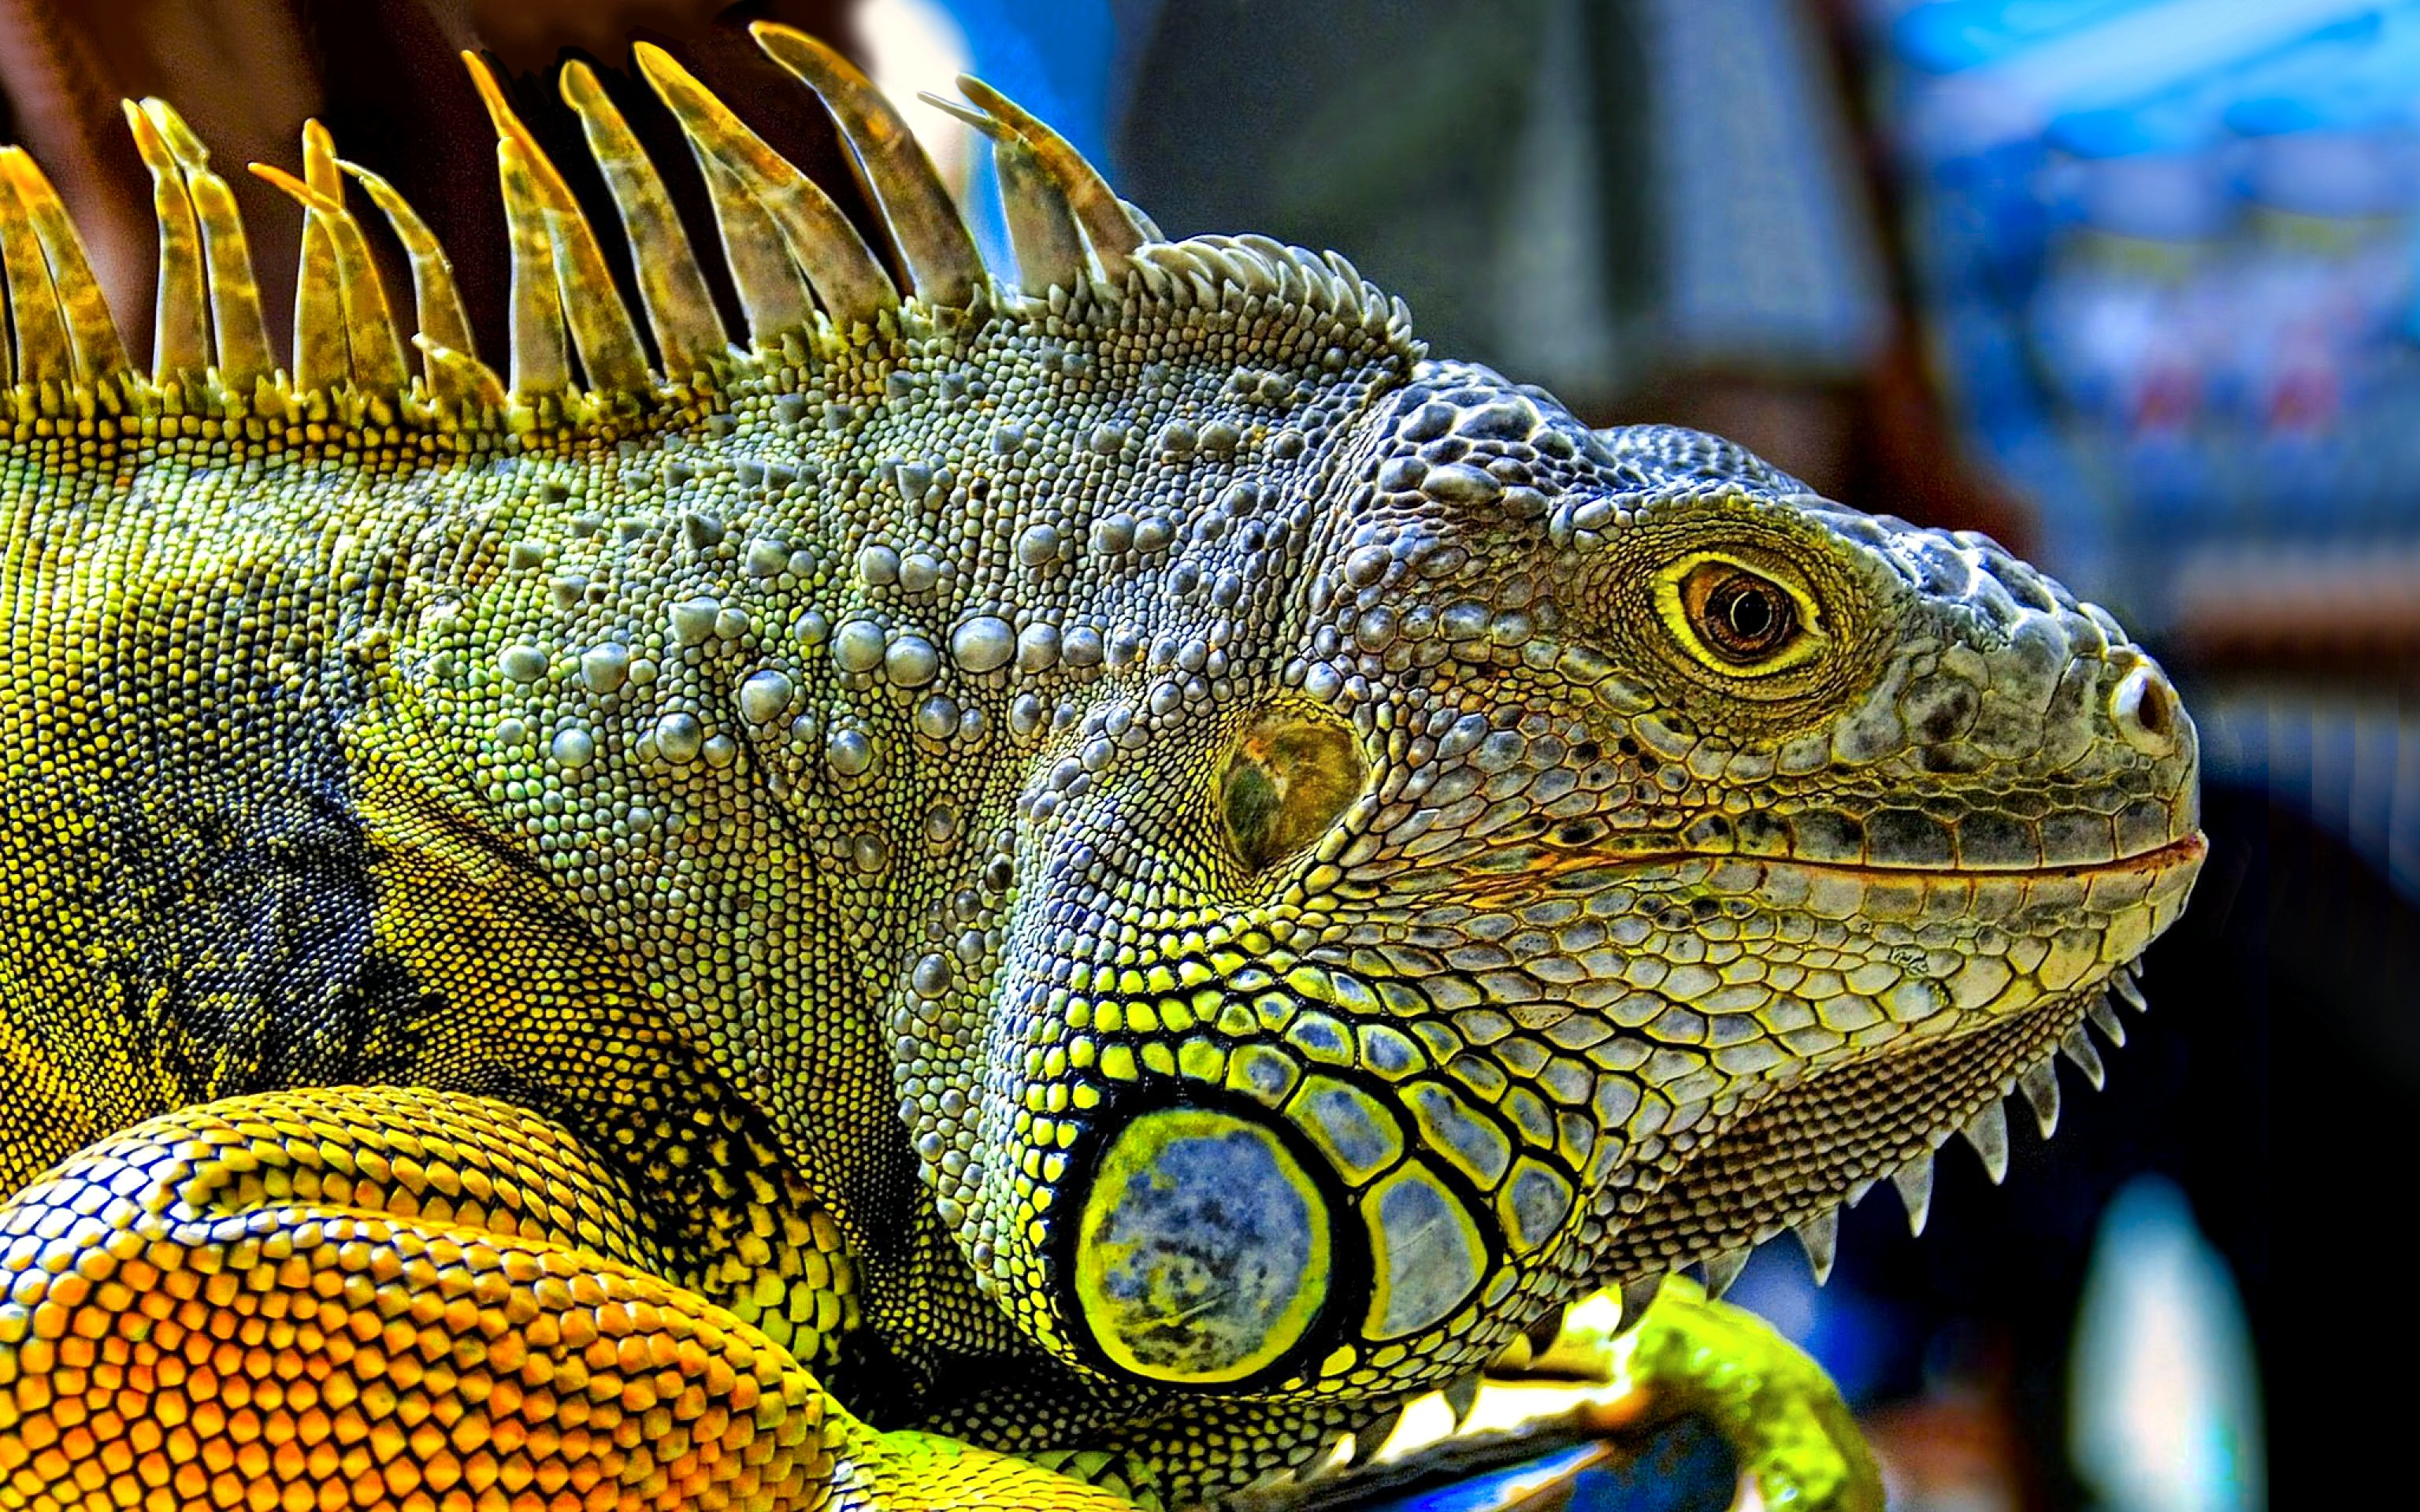 22 reptile hd wallpapers - photo #44